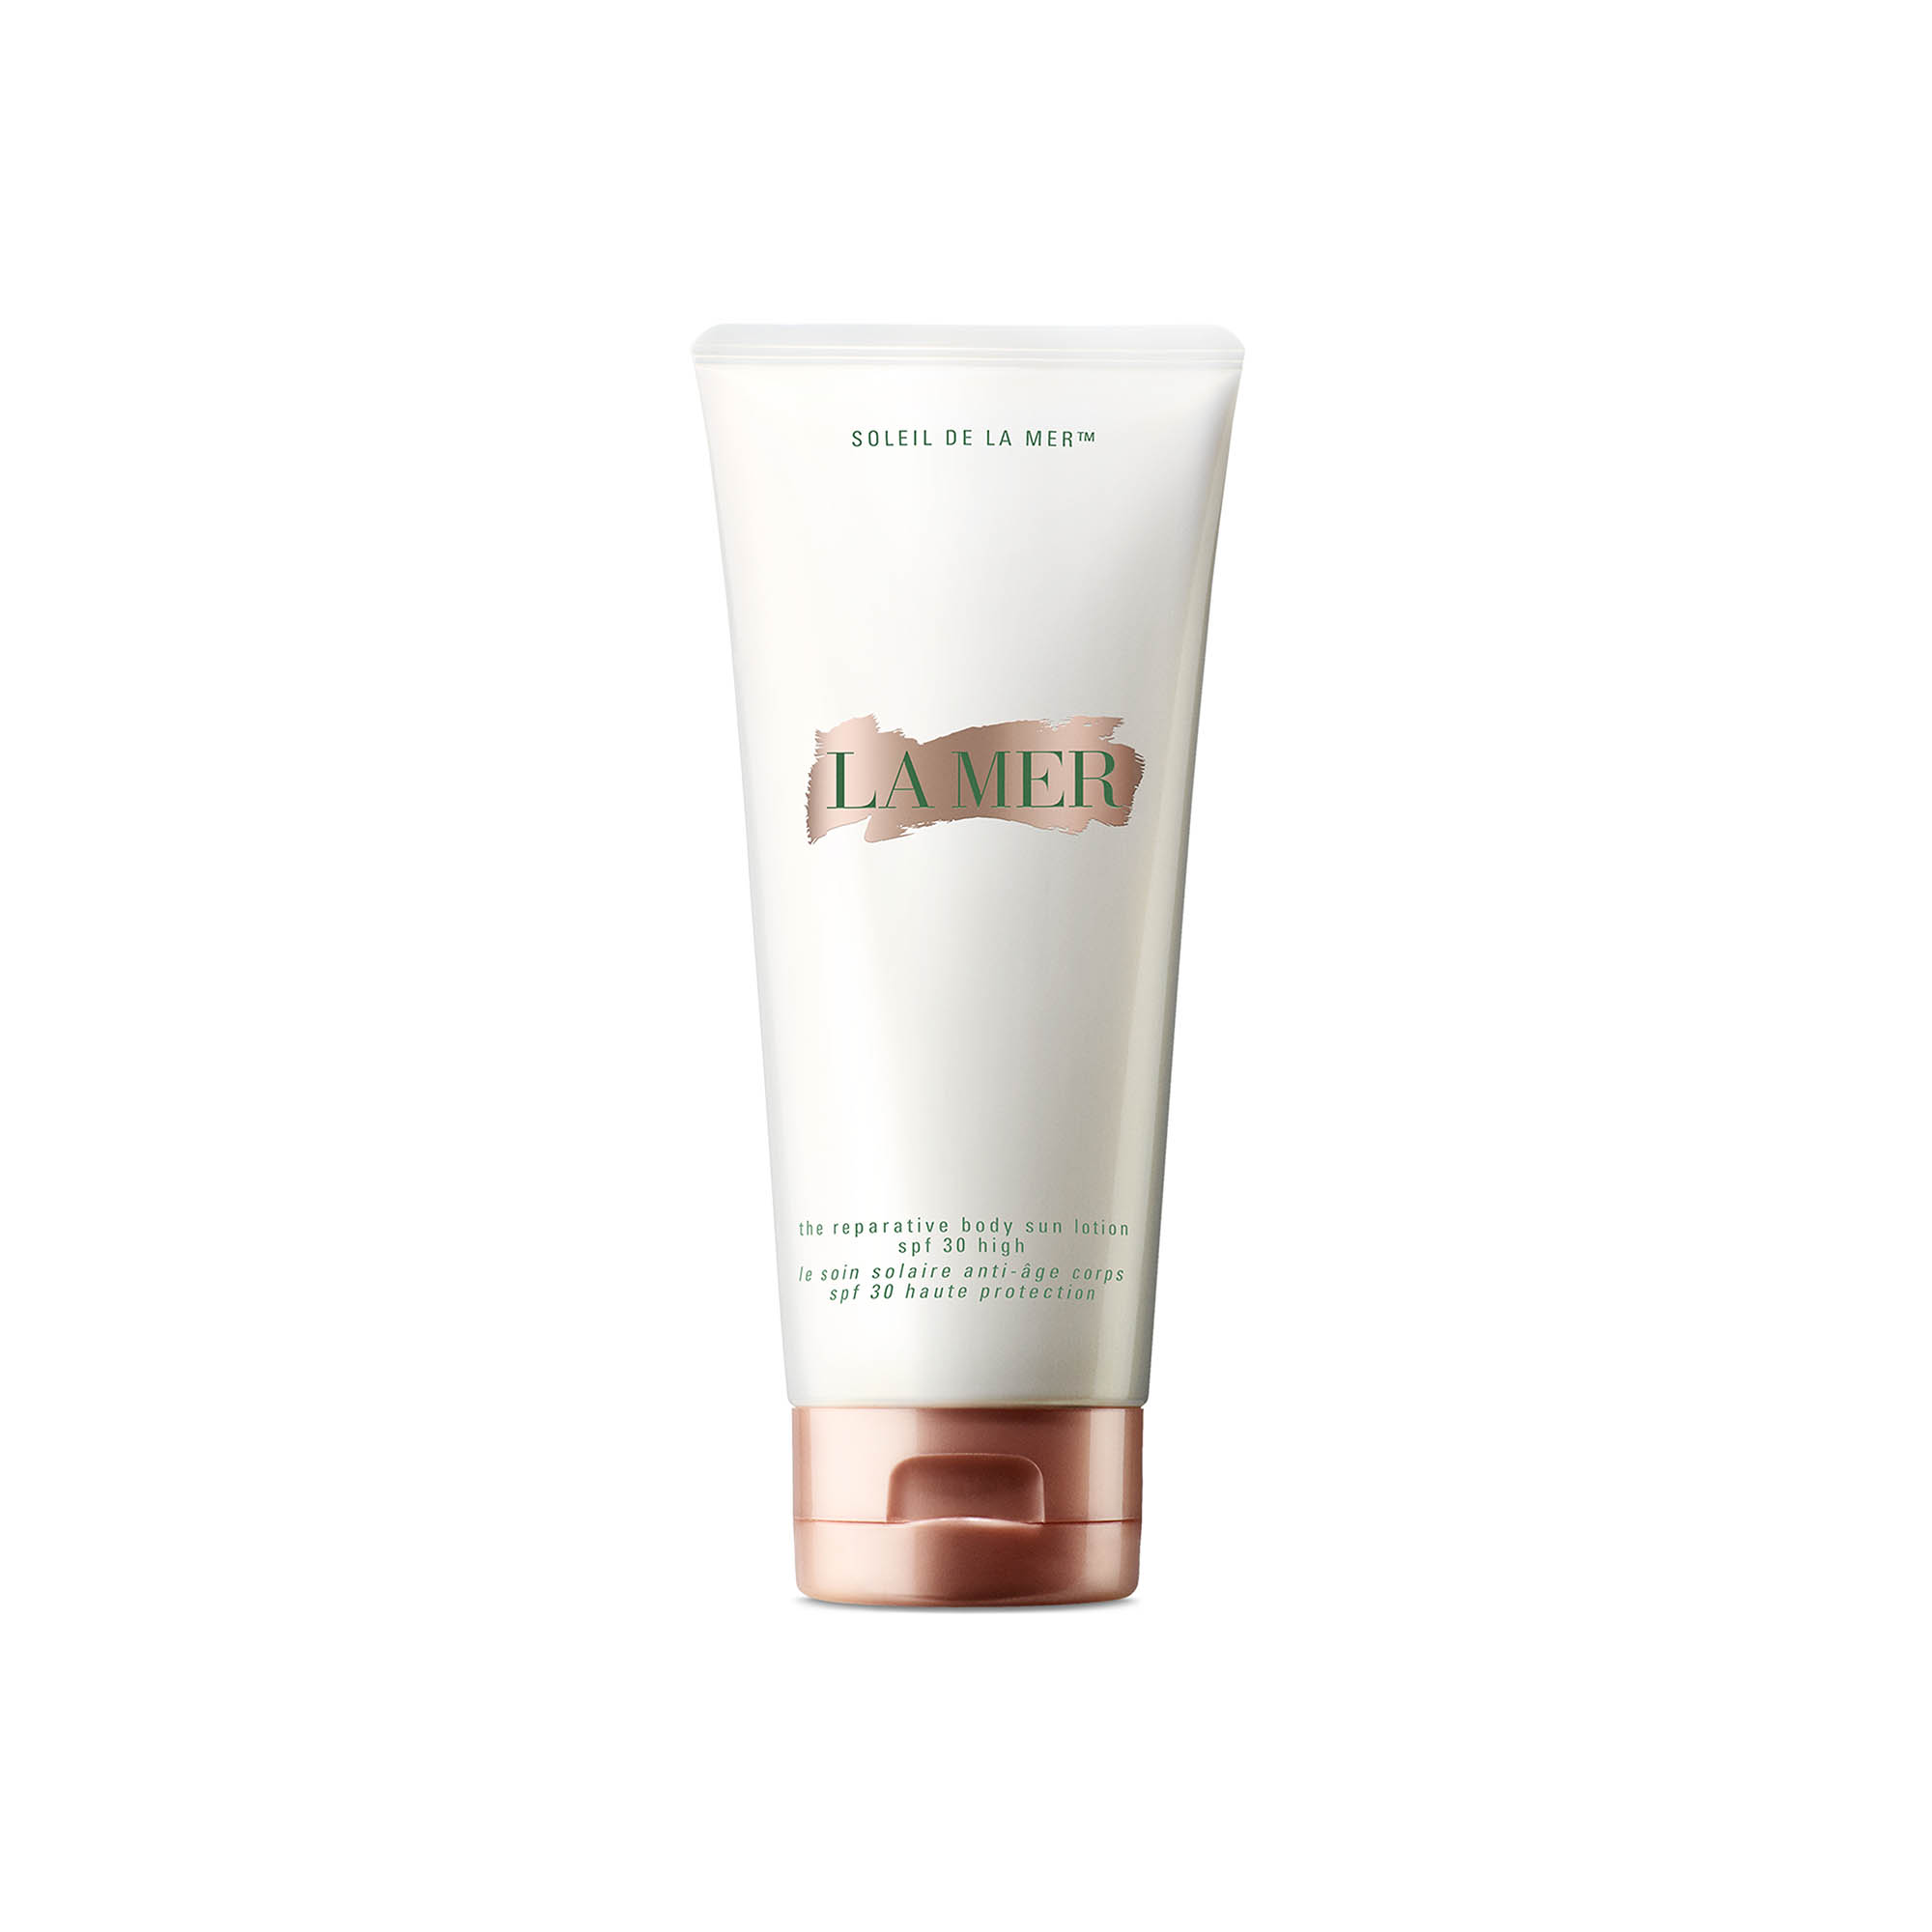 The Reparative Sun Lotion Body SPF30 200 ml